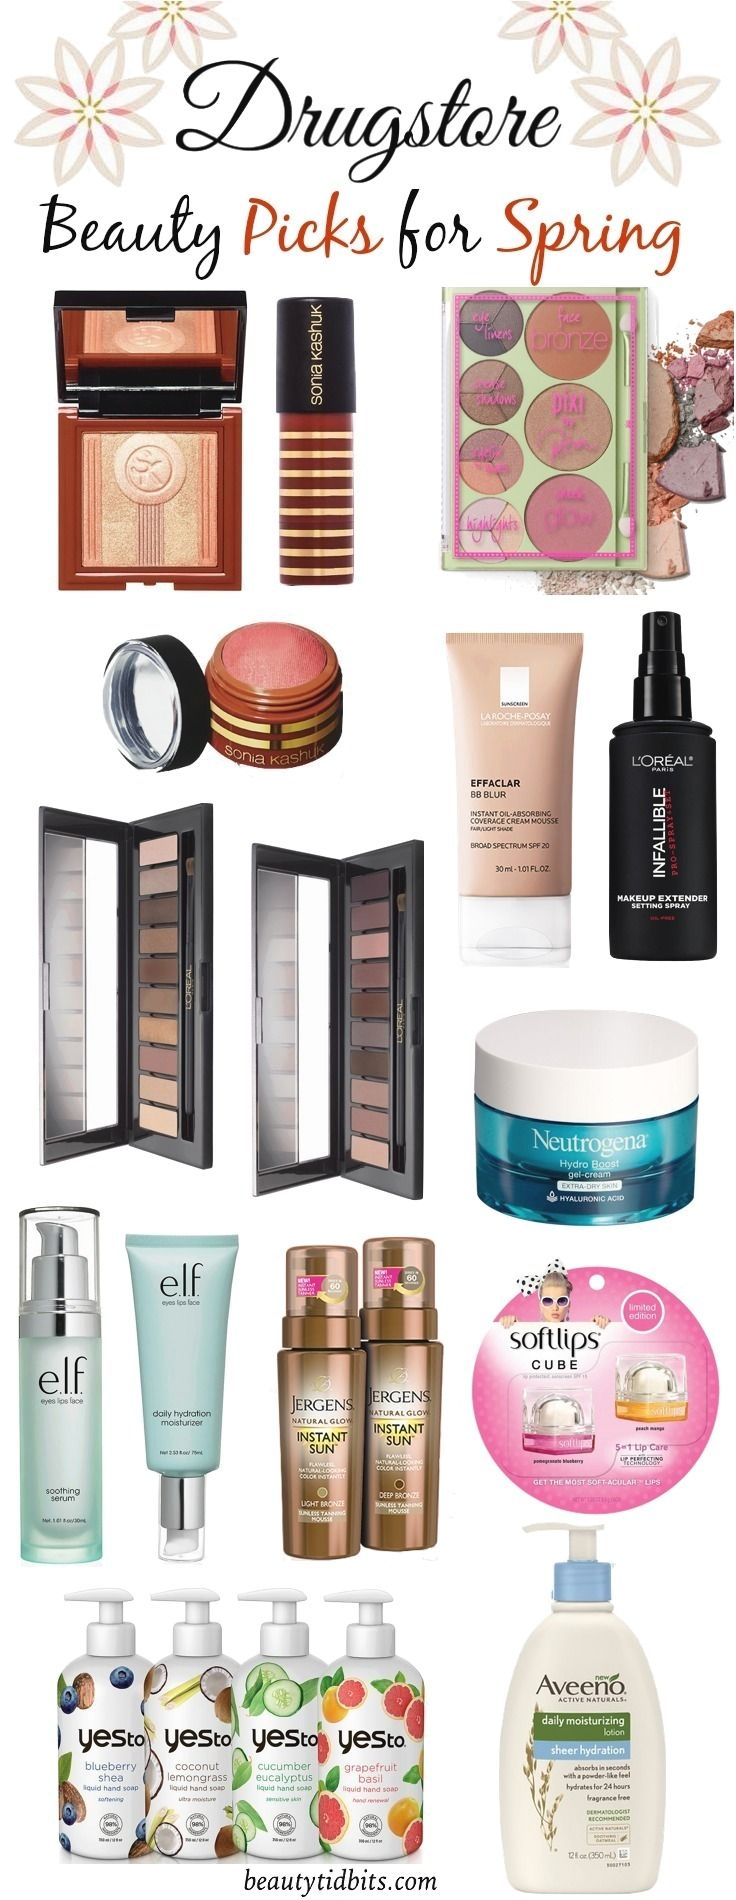 Drugstore Makeup and Beauty Picks Spring 2015